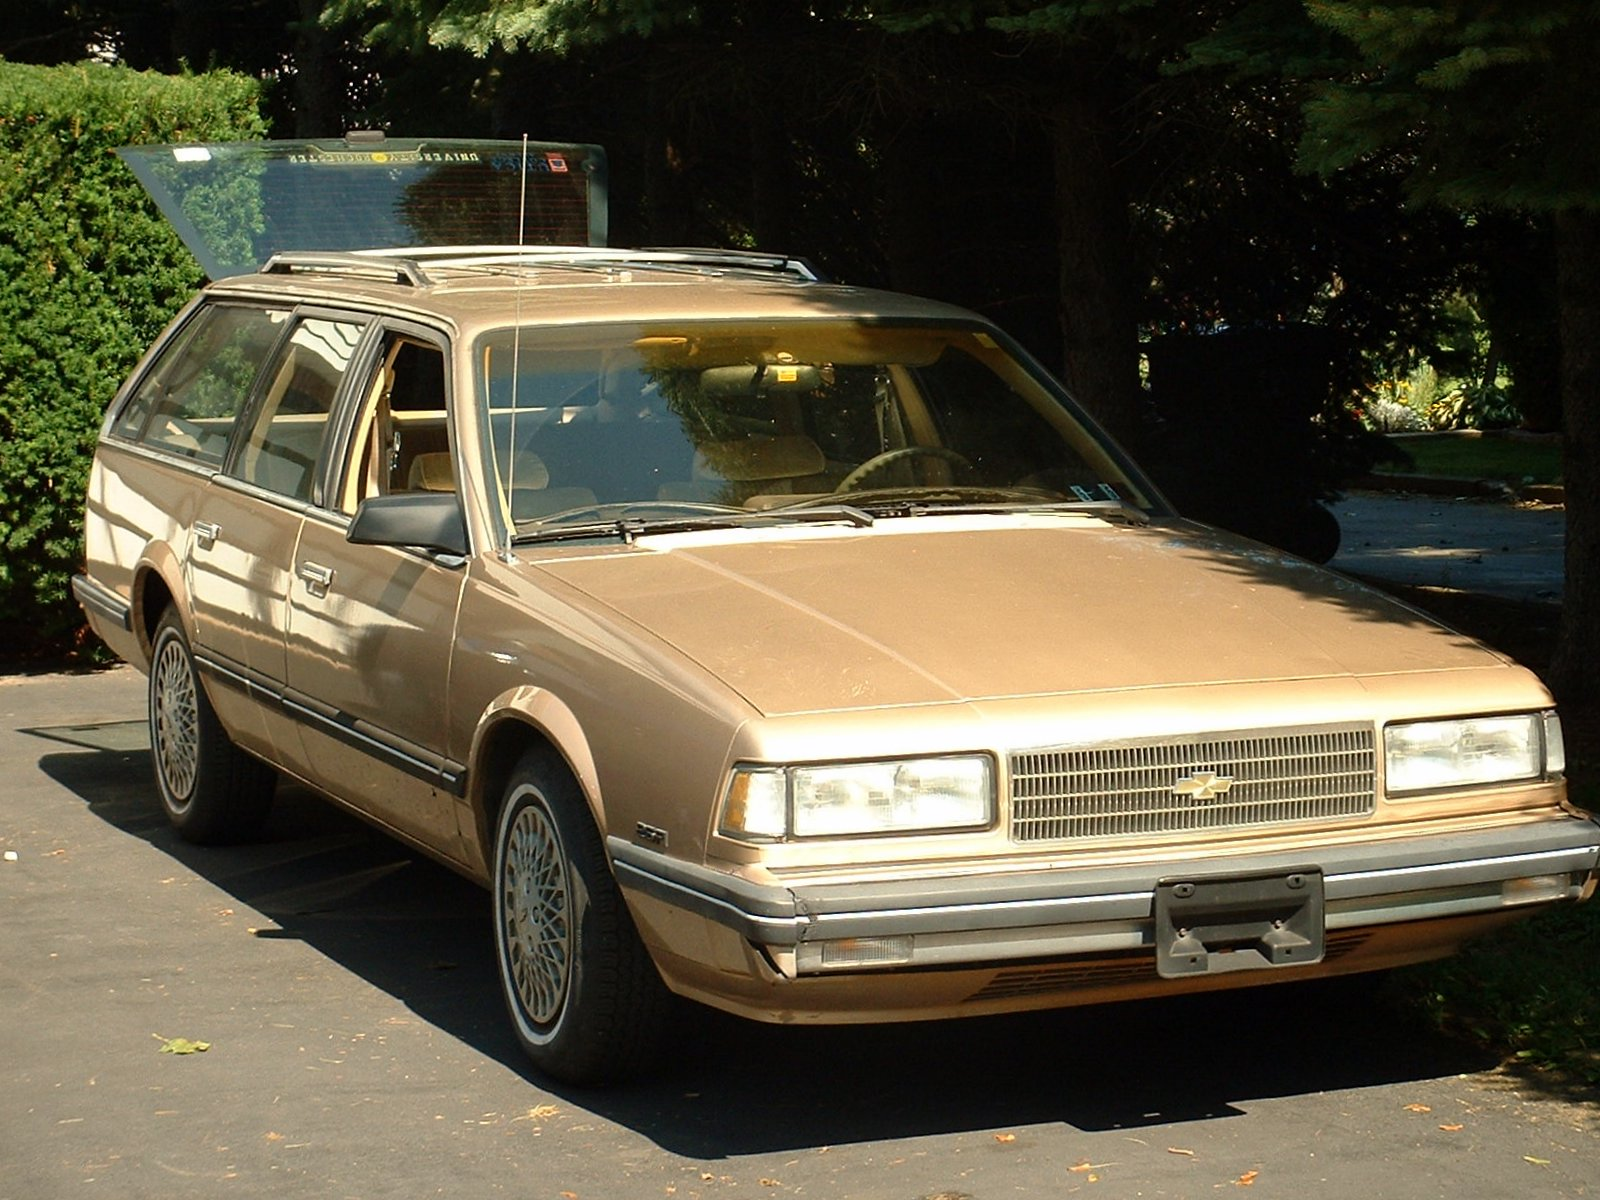 Fuel Economy of the 1990 Chevrolet Celebrity Wagon